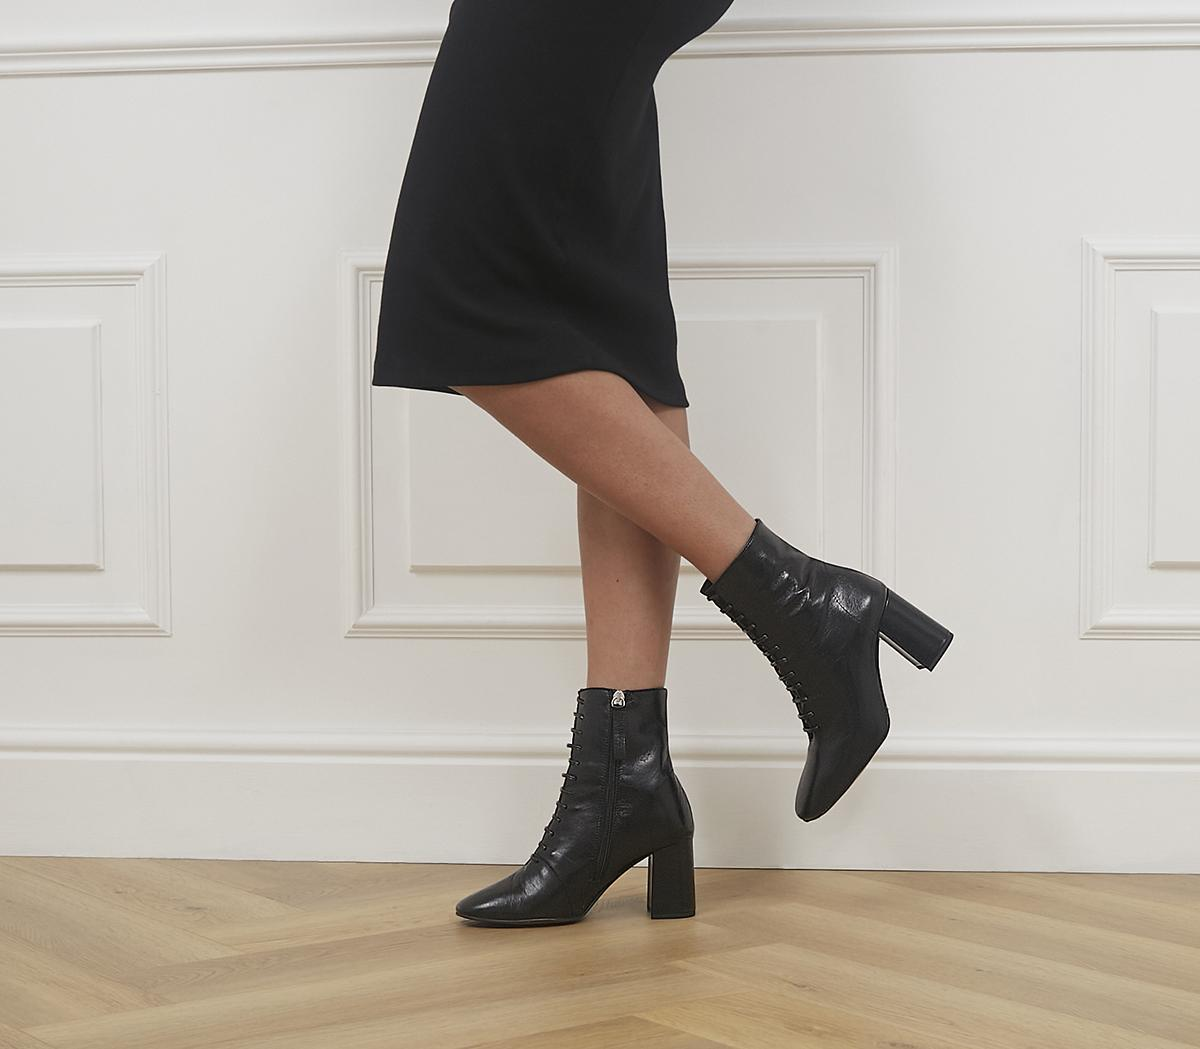 Affiliate Lace Up Dressy Square Toe Boots